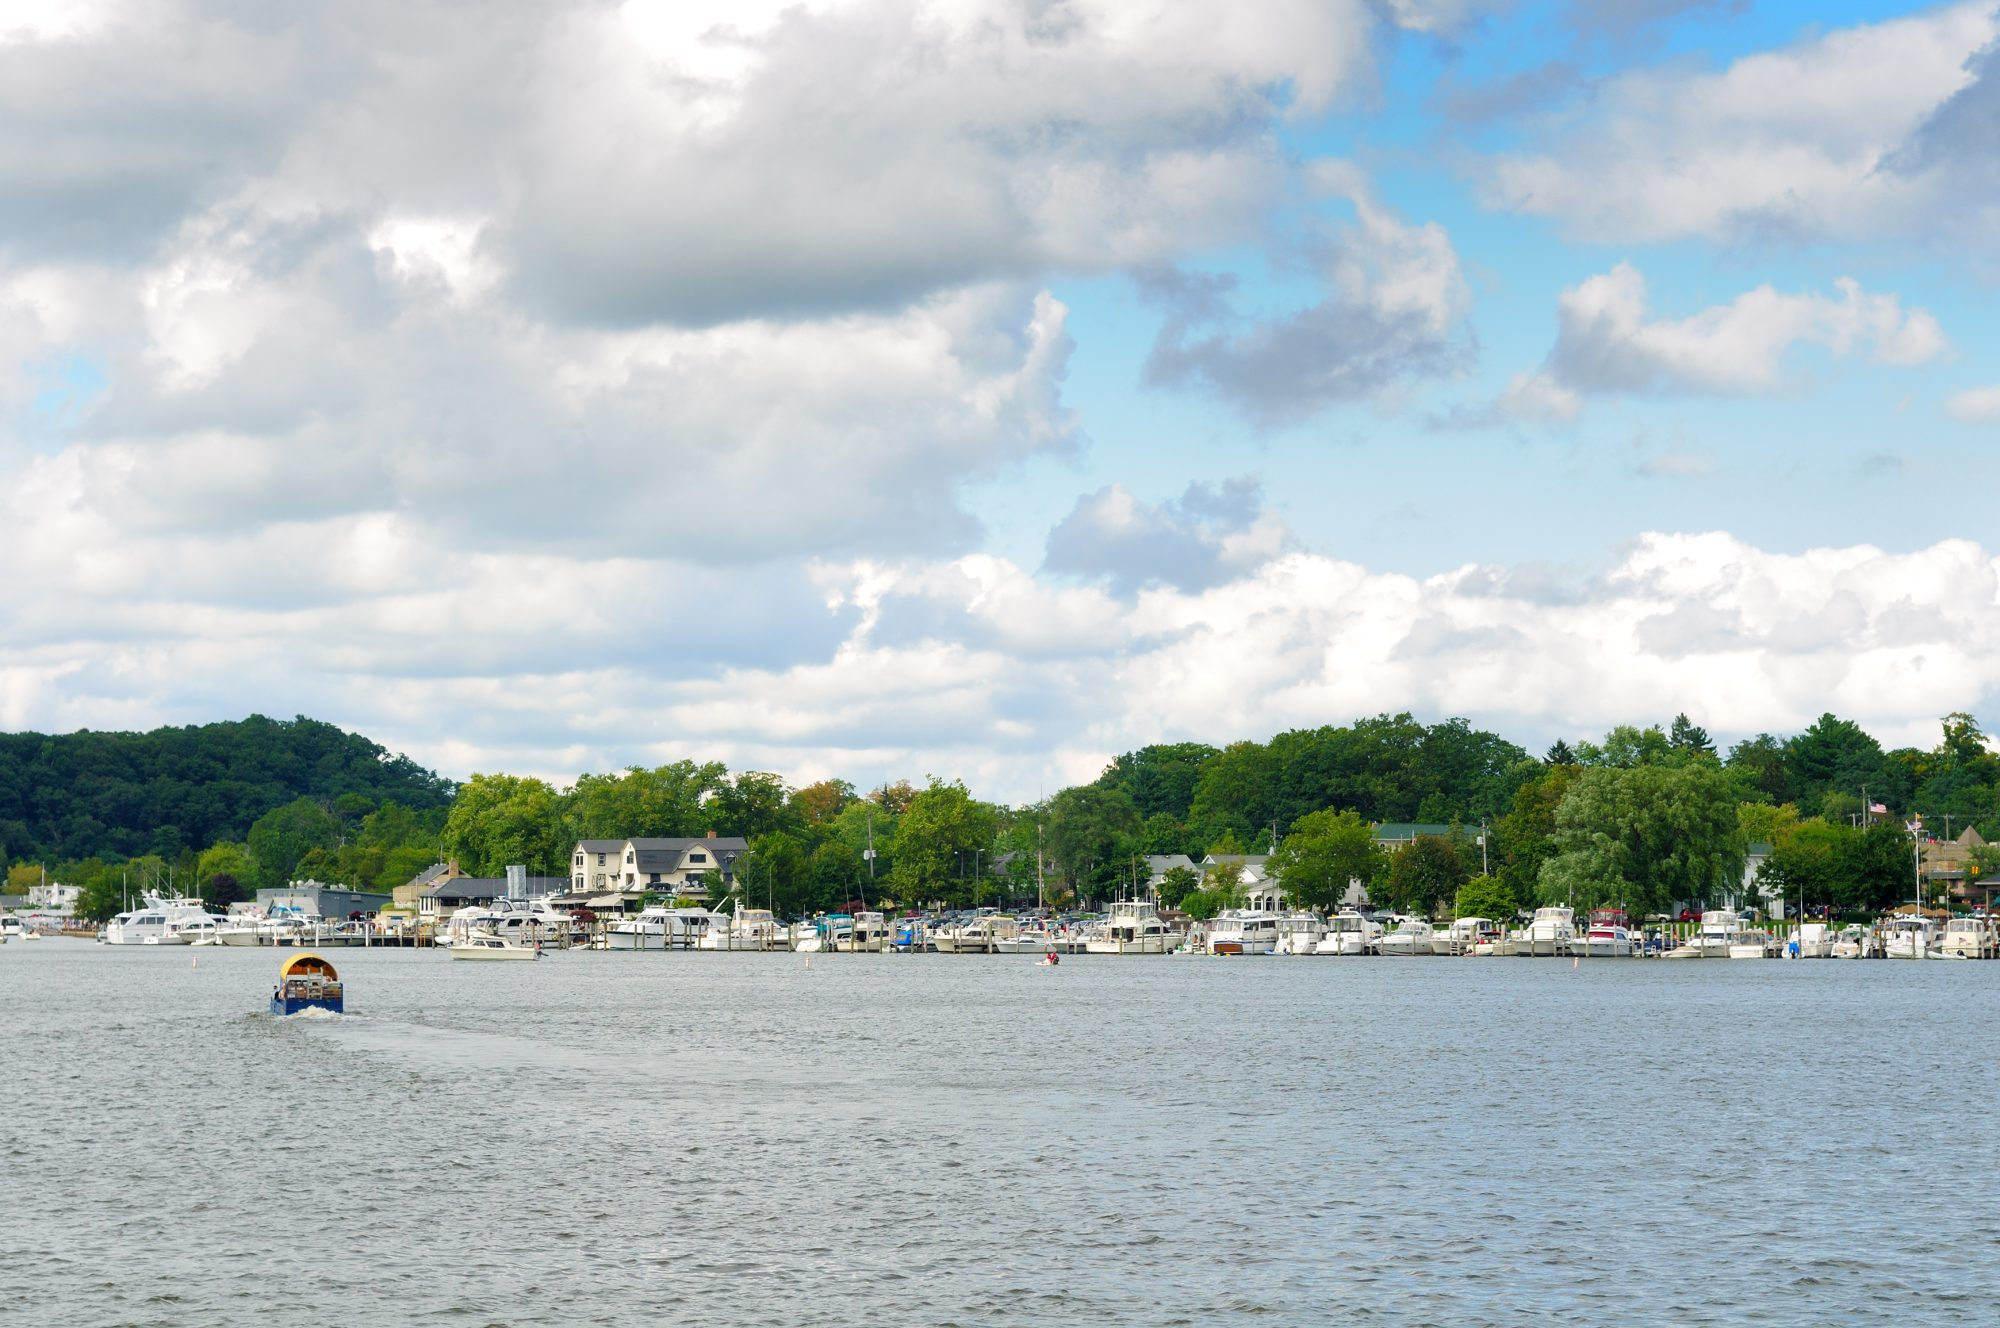 """Boats at the little town of Saugatuck, Michigan, seen from the water"""